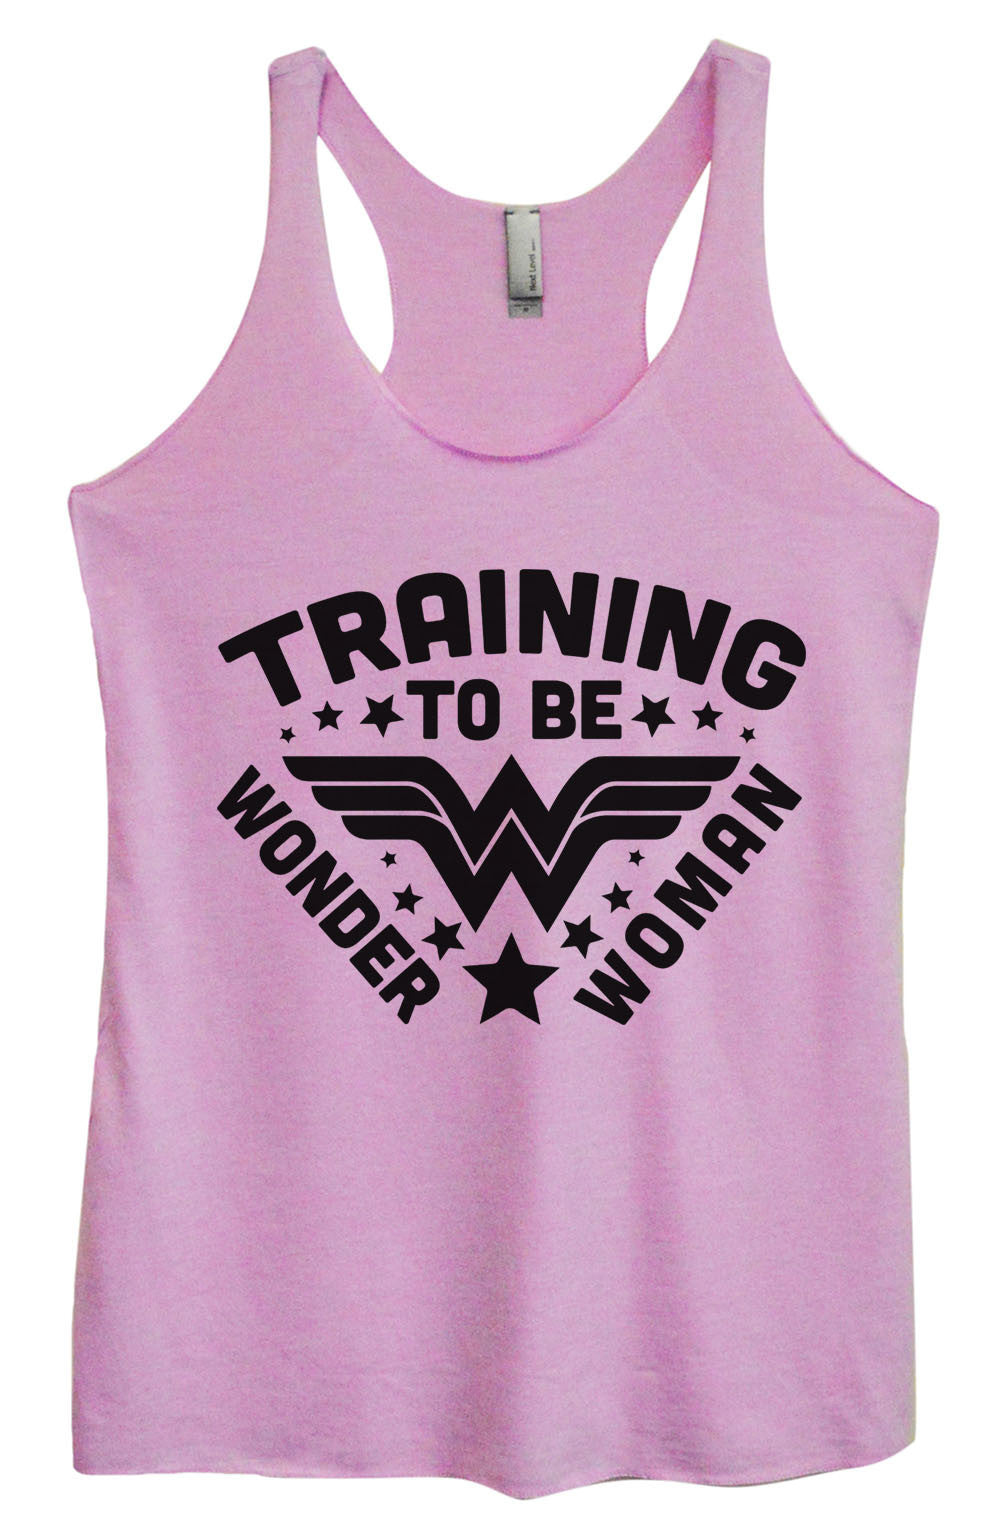 Womens Fashion Triblend Tank Top - Training To Be Wonder Woman - Tri-966 - Funny Shirts Tank Tops Burnouts and Triblends  - 4